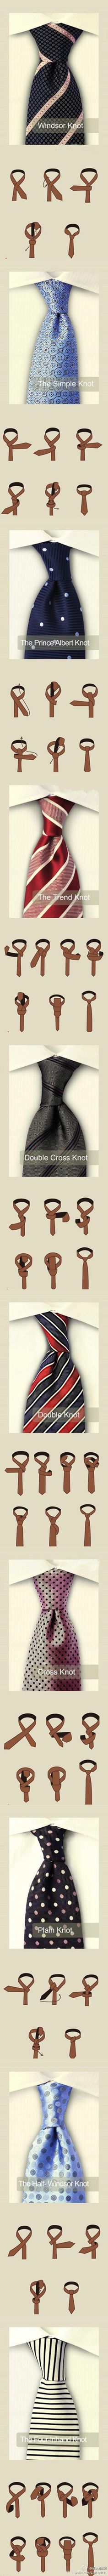 Know your tie knots.